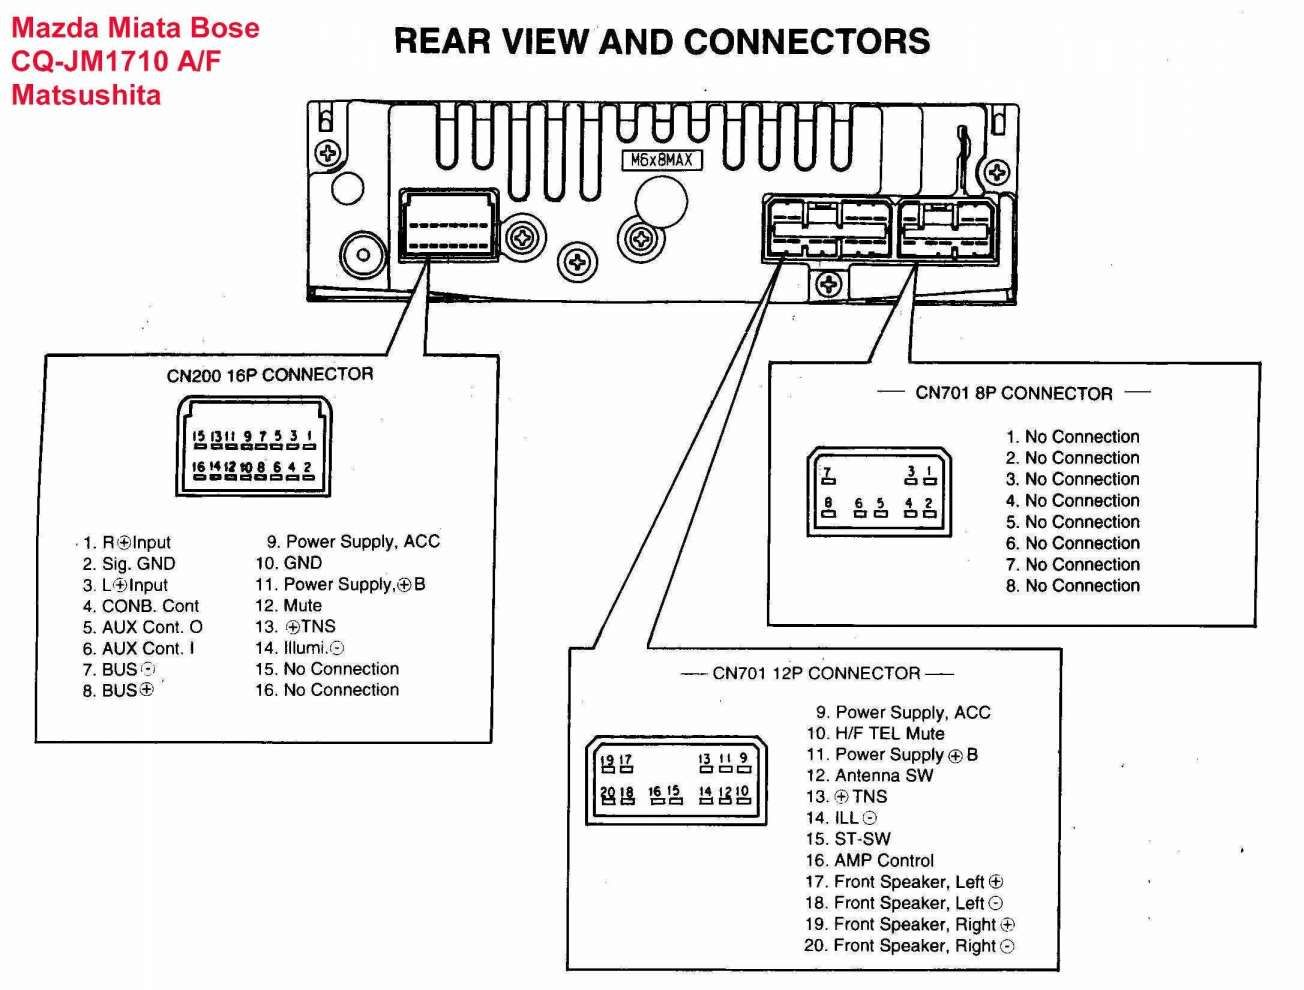 460 Car Diagram ideas | diagram, electrical wiring diagram, car | Na Mazda Miata Radio Wiring Diagram |  | Pinterest